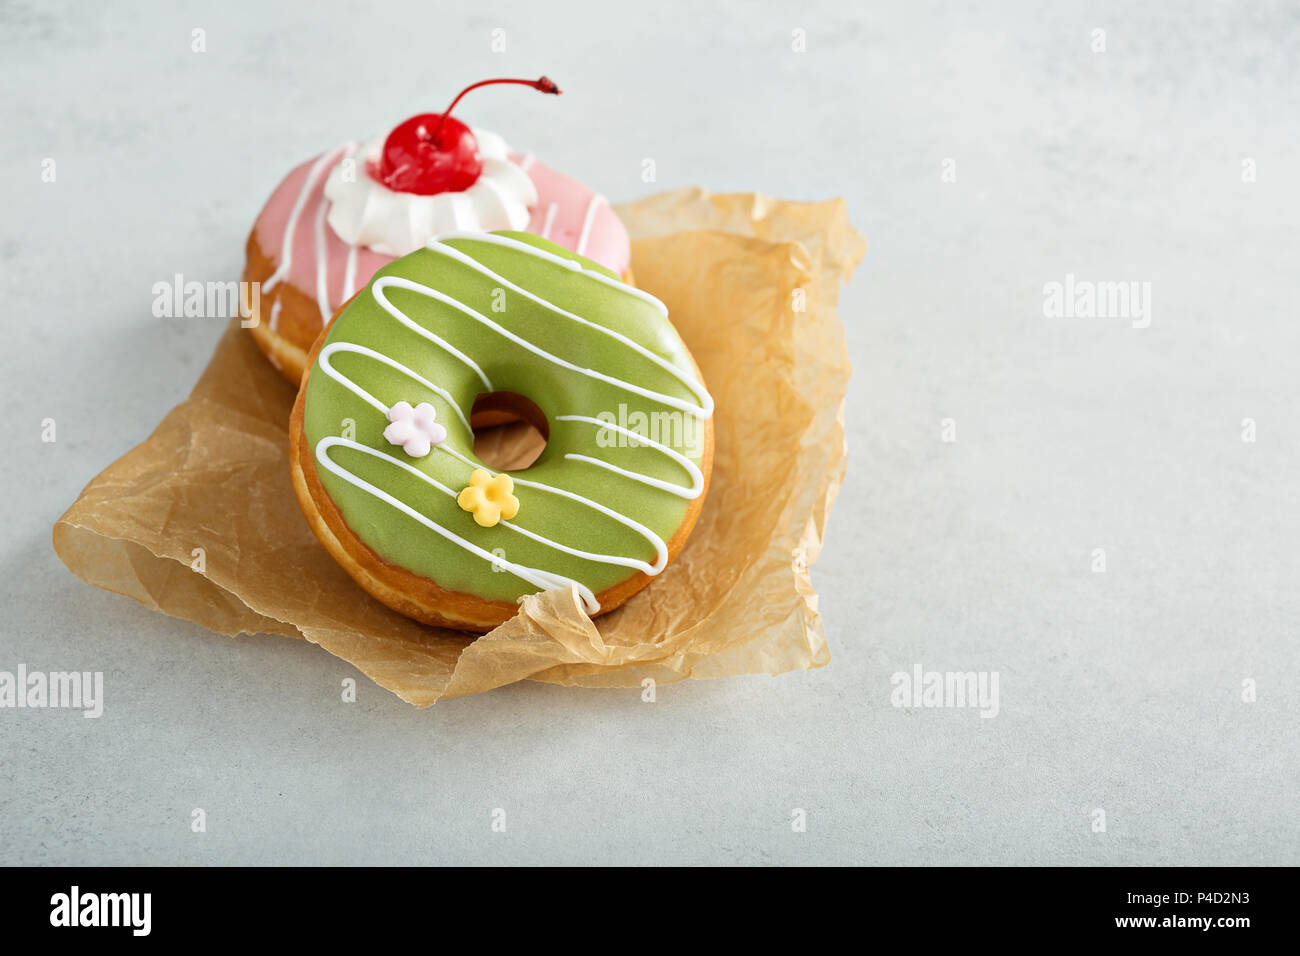 Assorted glazed fried donuts on parchment Stock Photo